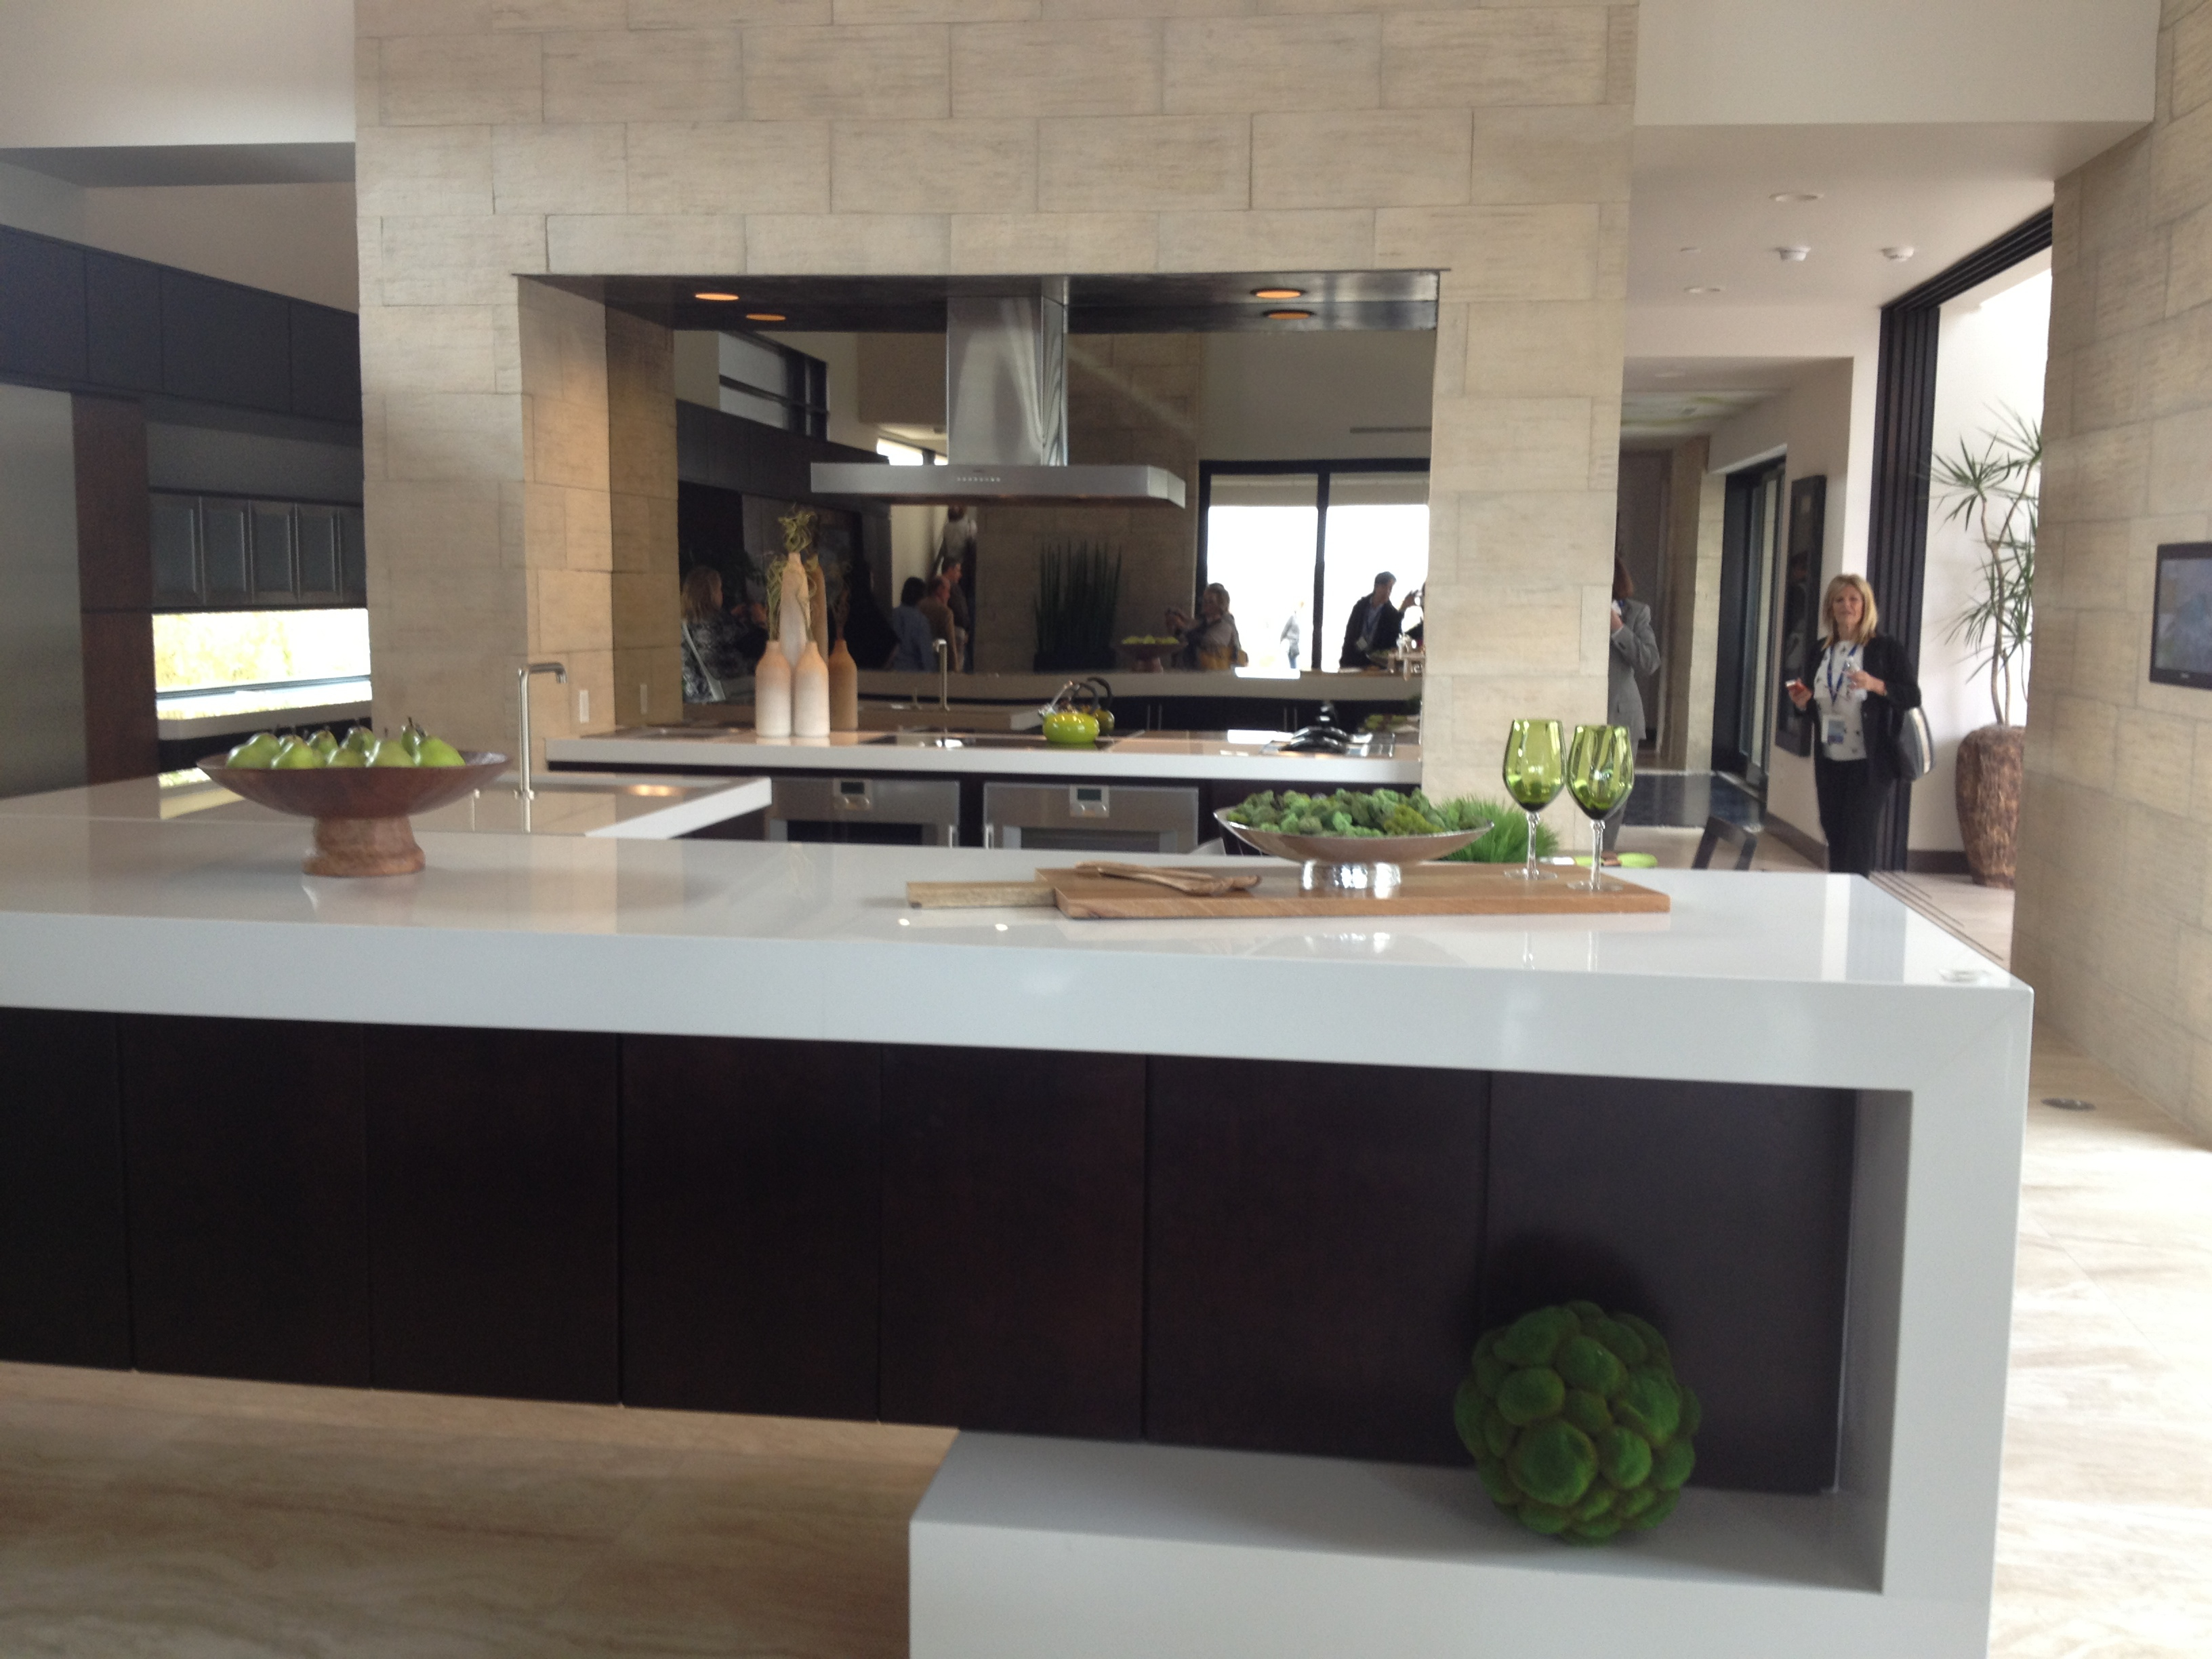 Modern Kitchen Design 2013 The Latest Trends In Kitchen Island ...